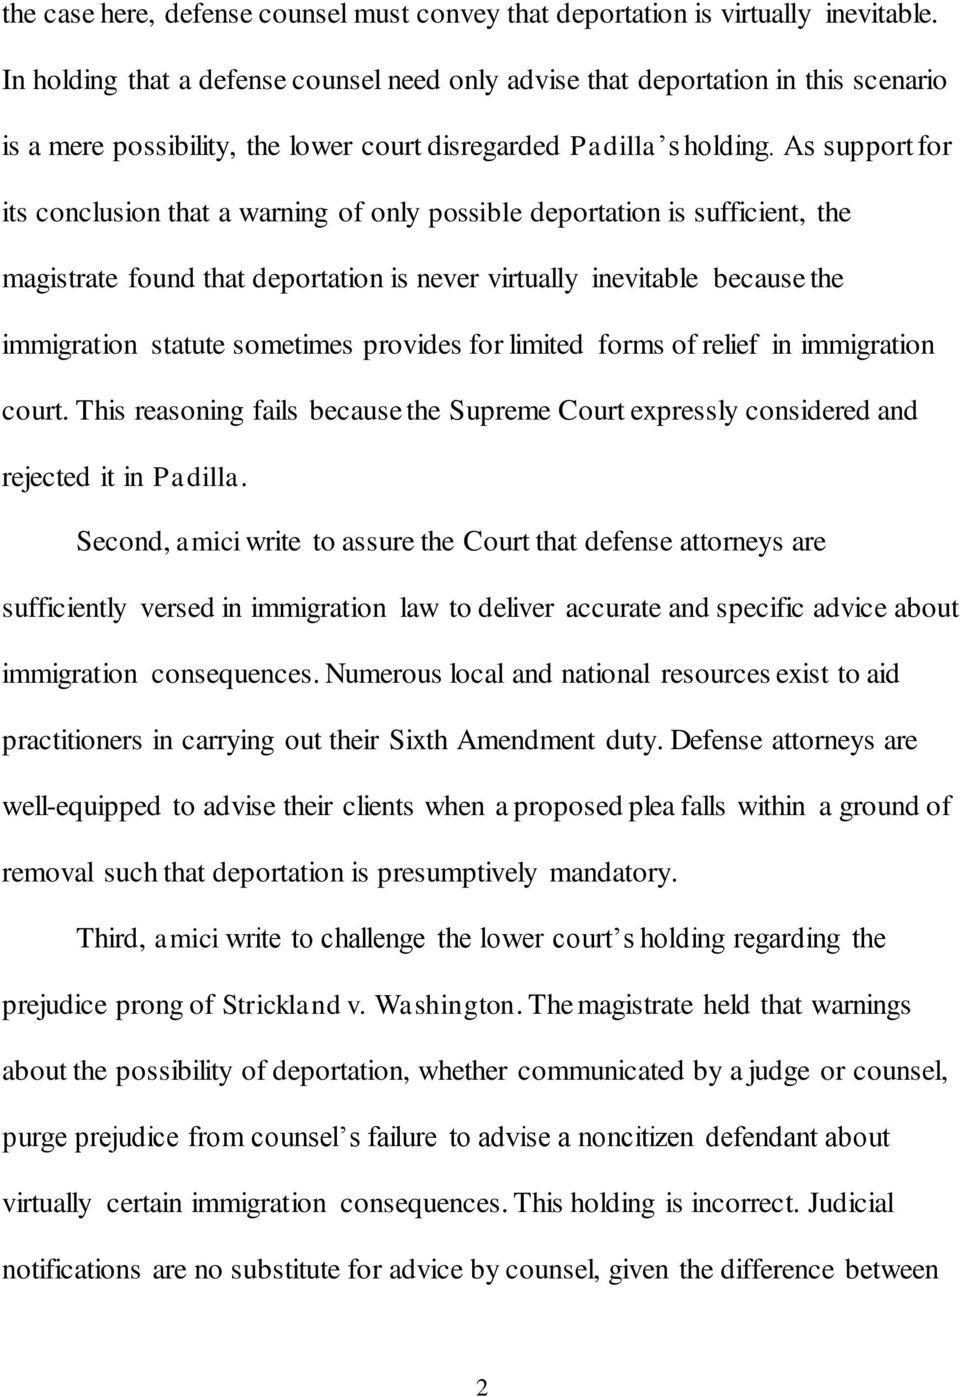 As support for its conclusion that a warning of only possible deportation is sufficient, the magistrate found that deportation is never virtually inevitable because the immigration statute sometimes